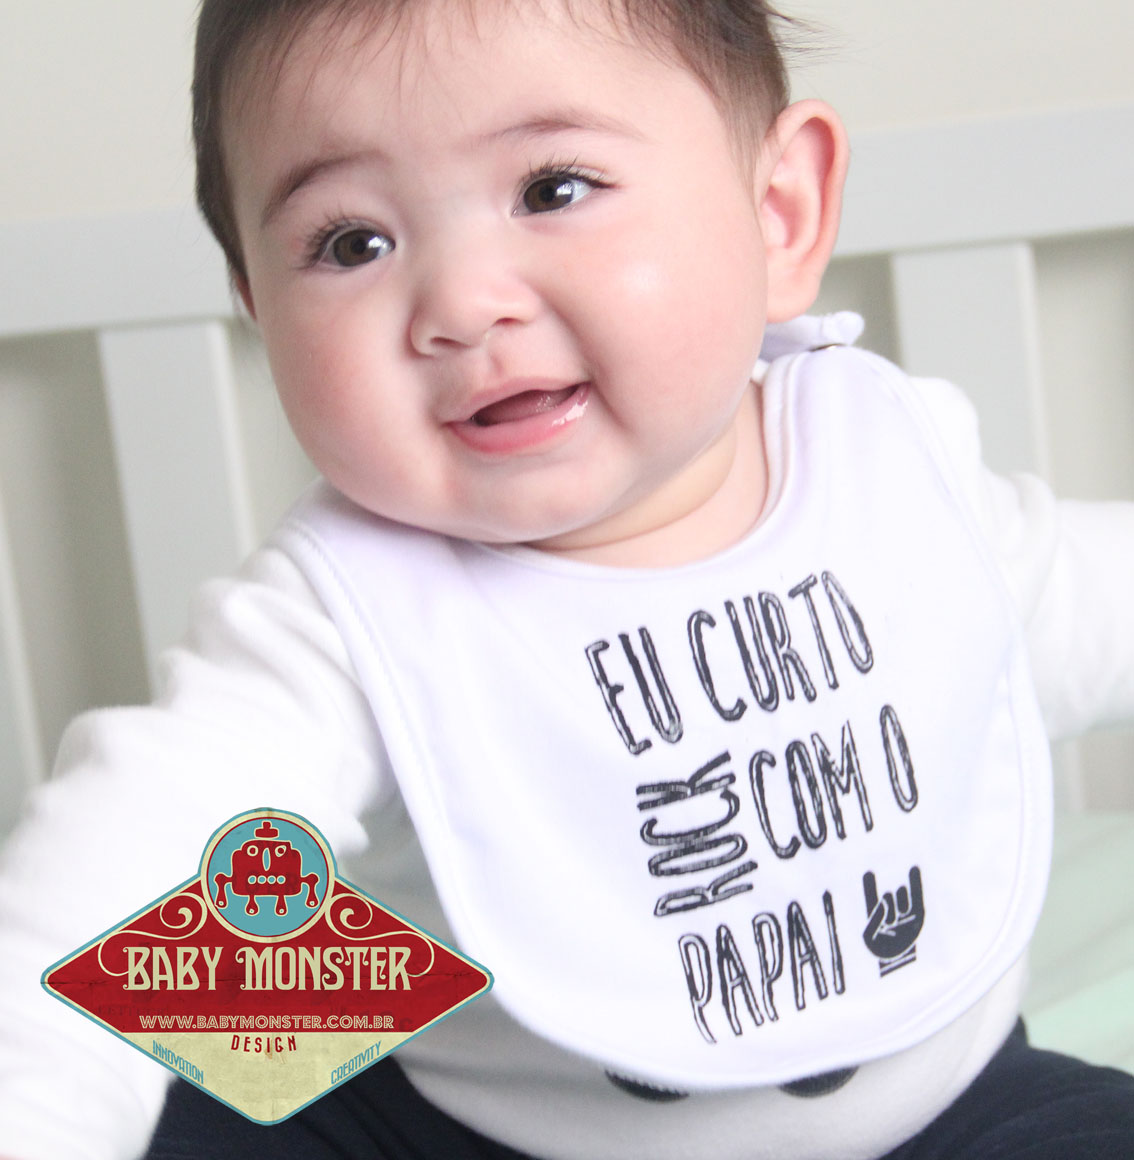 Babador Baby Rock - Eu curto Rock com o Papai - White - Baby Monster - Body Bebe